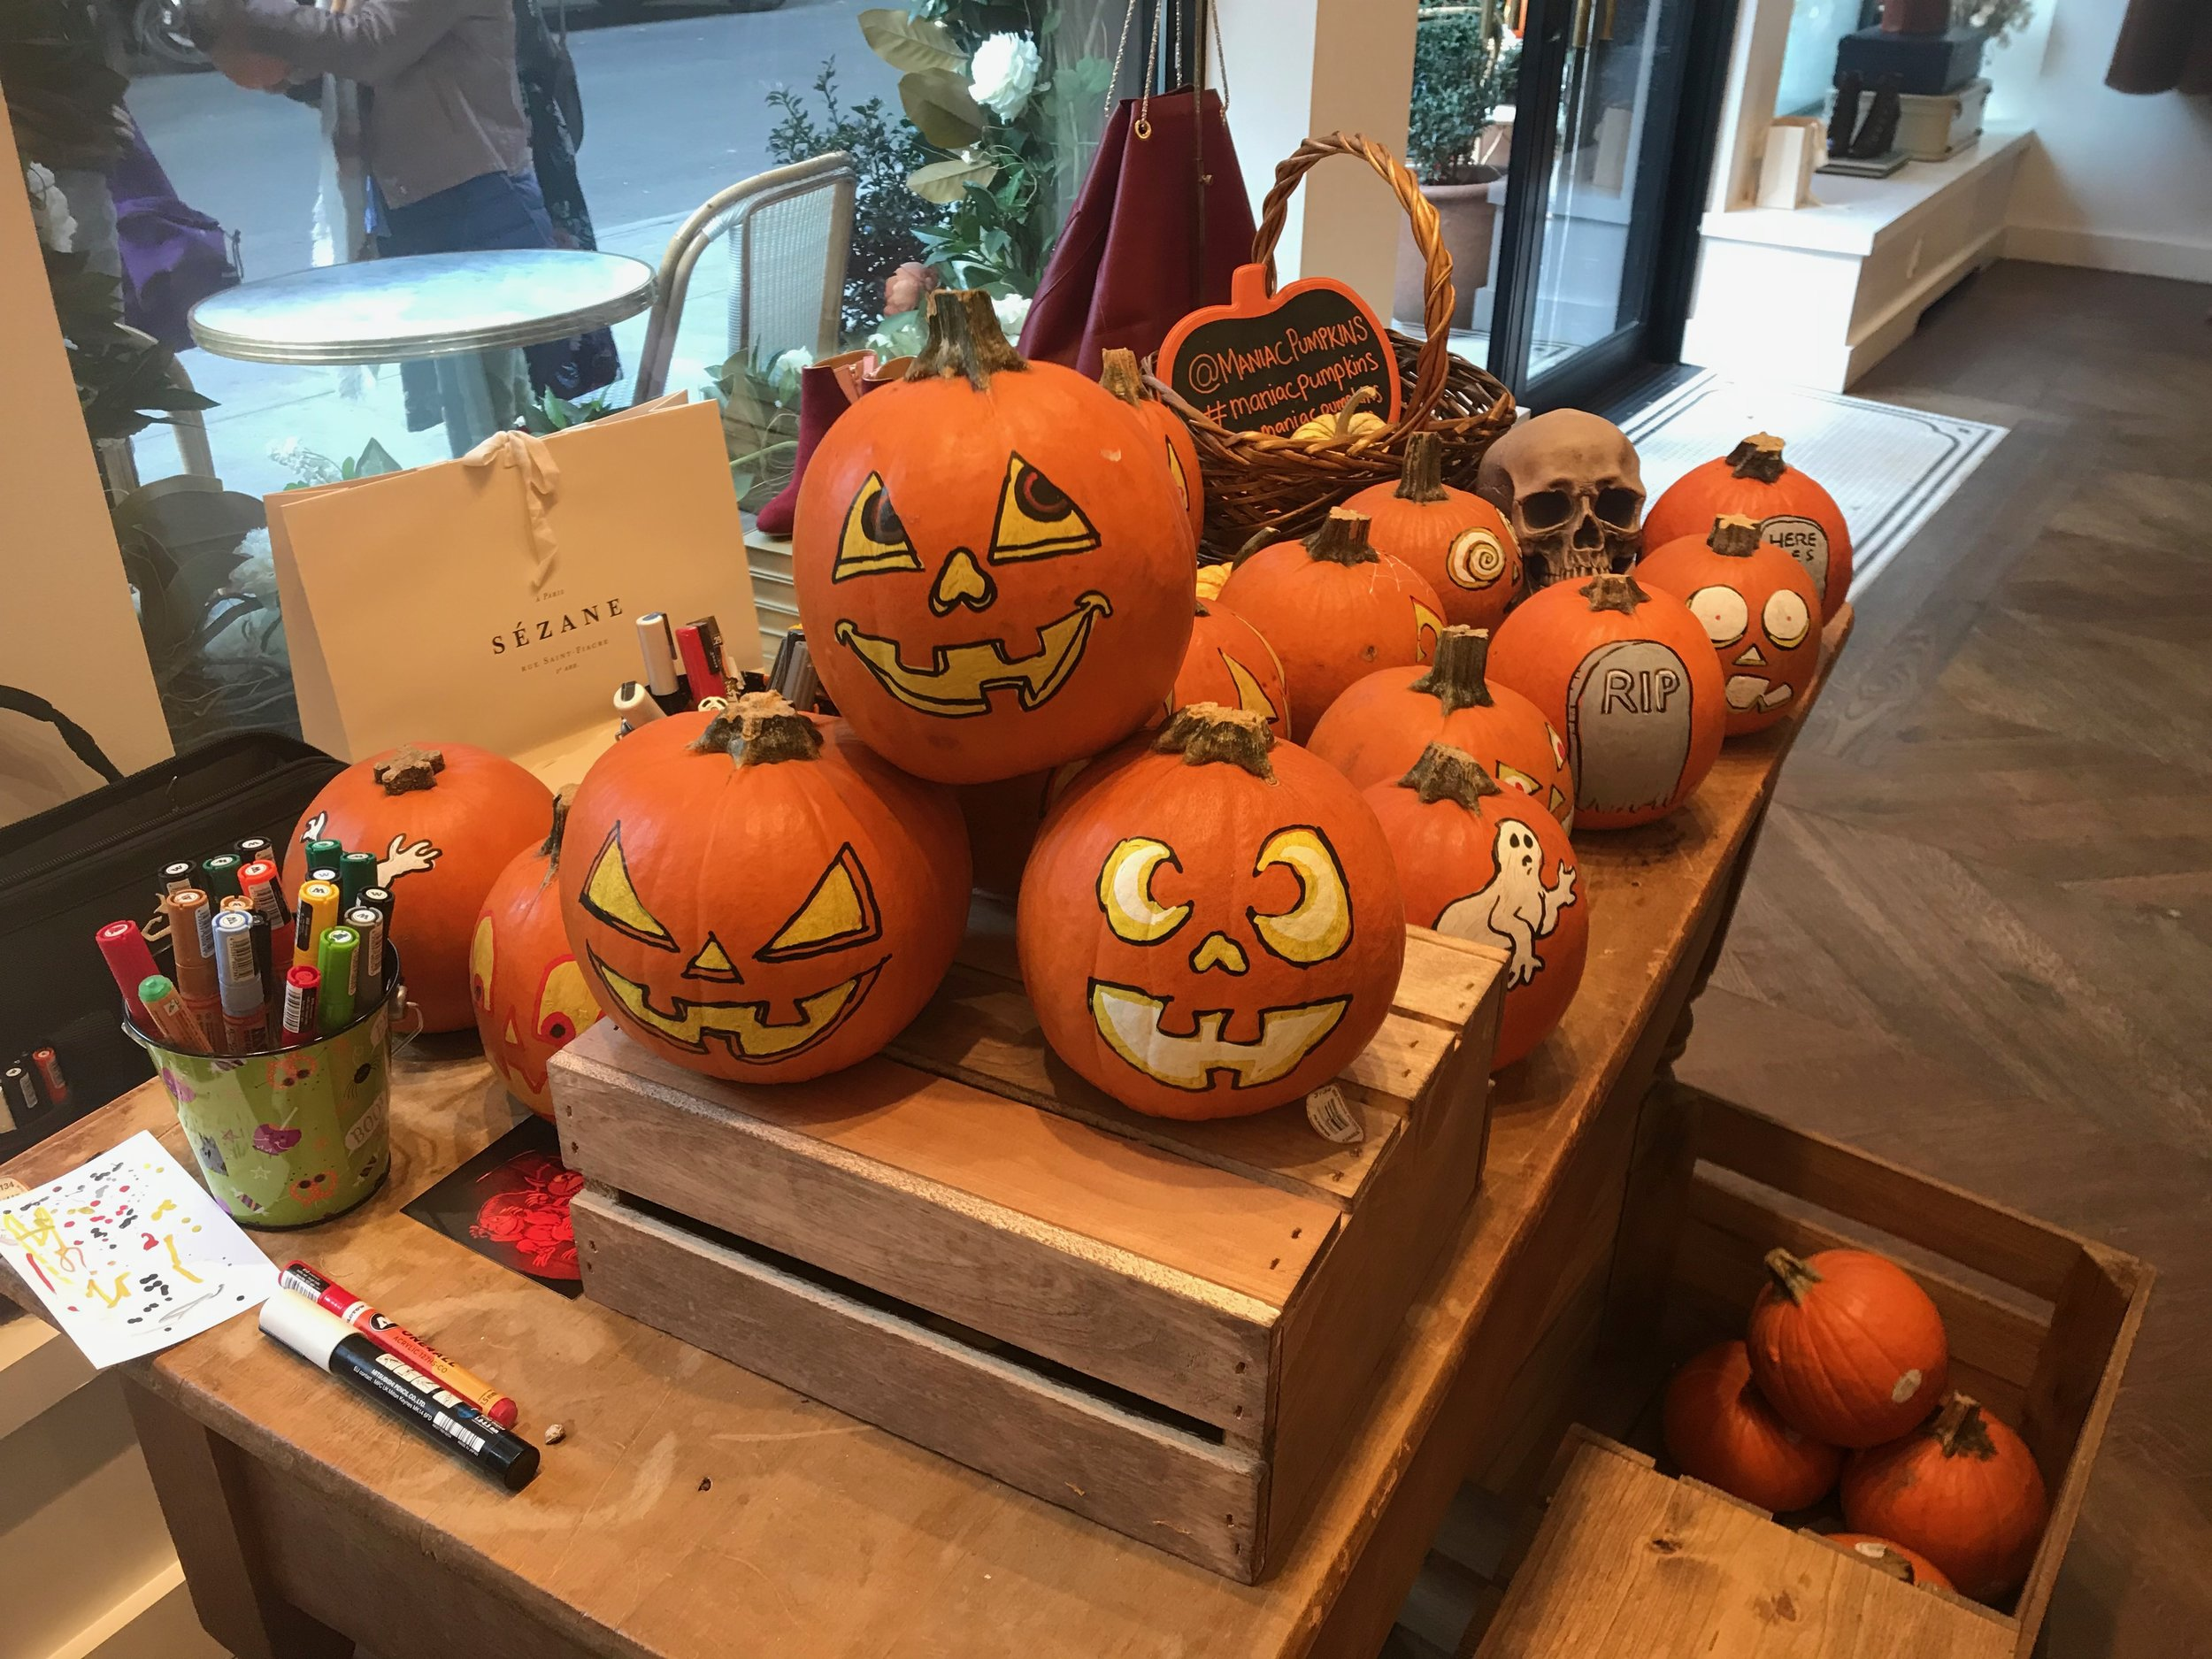 Personalized sugar pumpkin give aways at Halloween event in SoHo, NYC